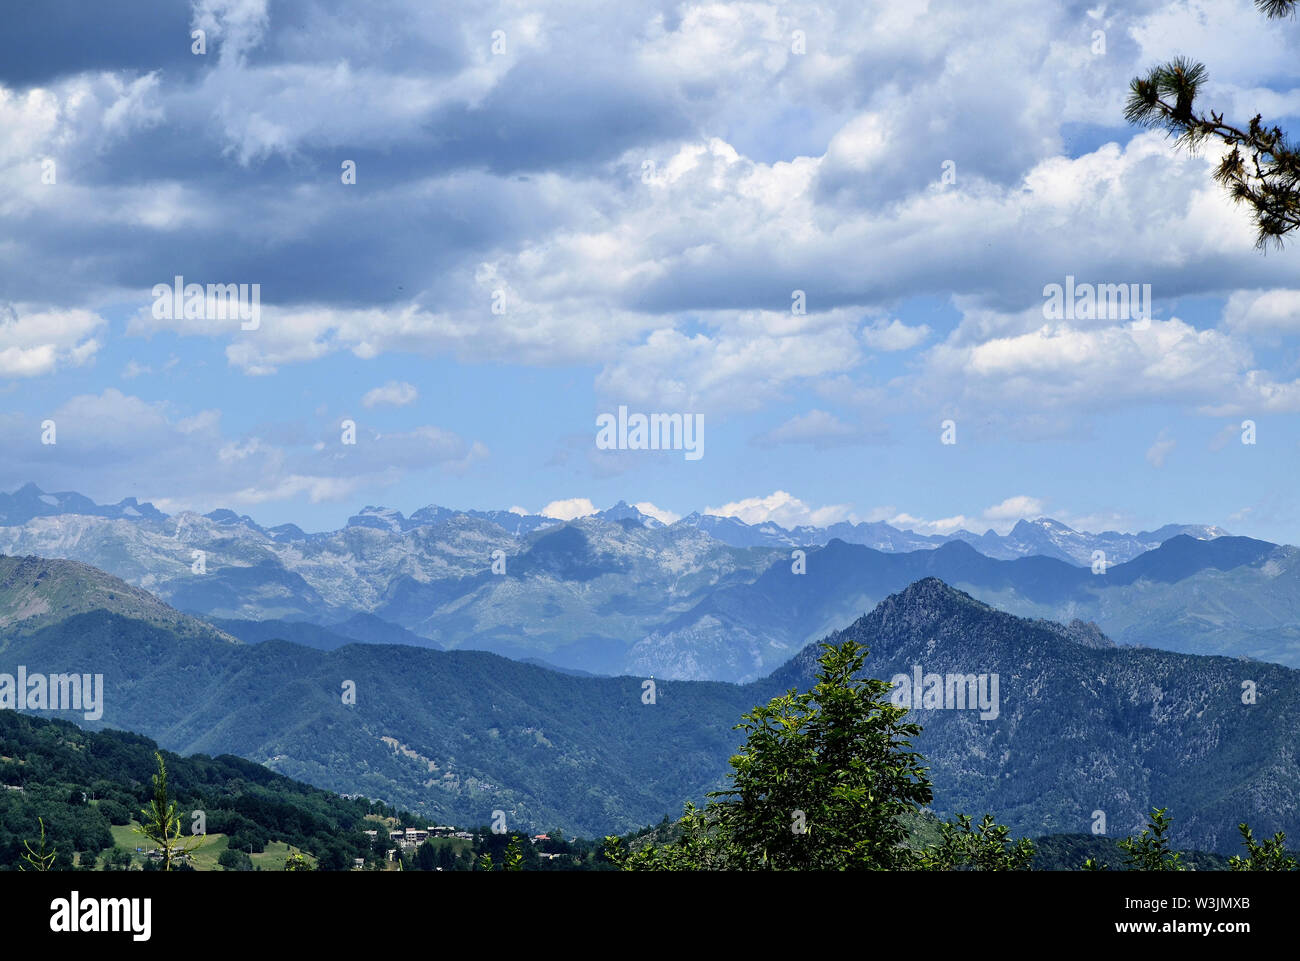 Colle del Lys, Piedmont, Italy. July 2019. Panoramic view from the lookout of the surrounding mountains. - Stock Image